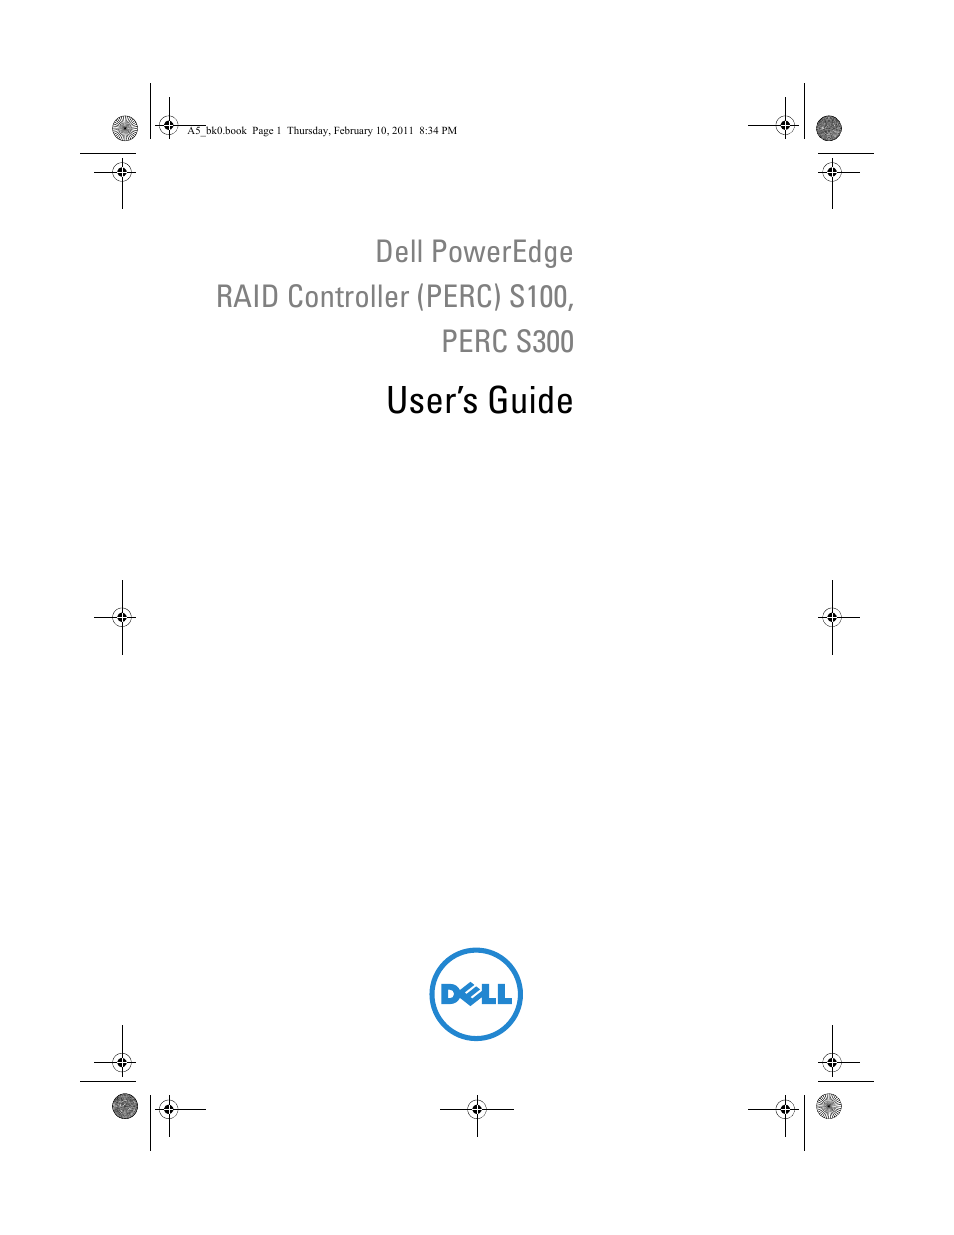 Dell PowerEdge RAID Controller S300 User Manual | 110 pages